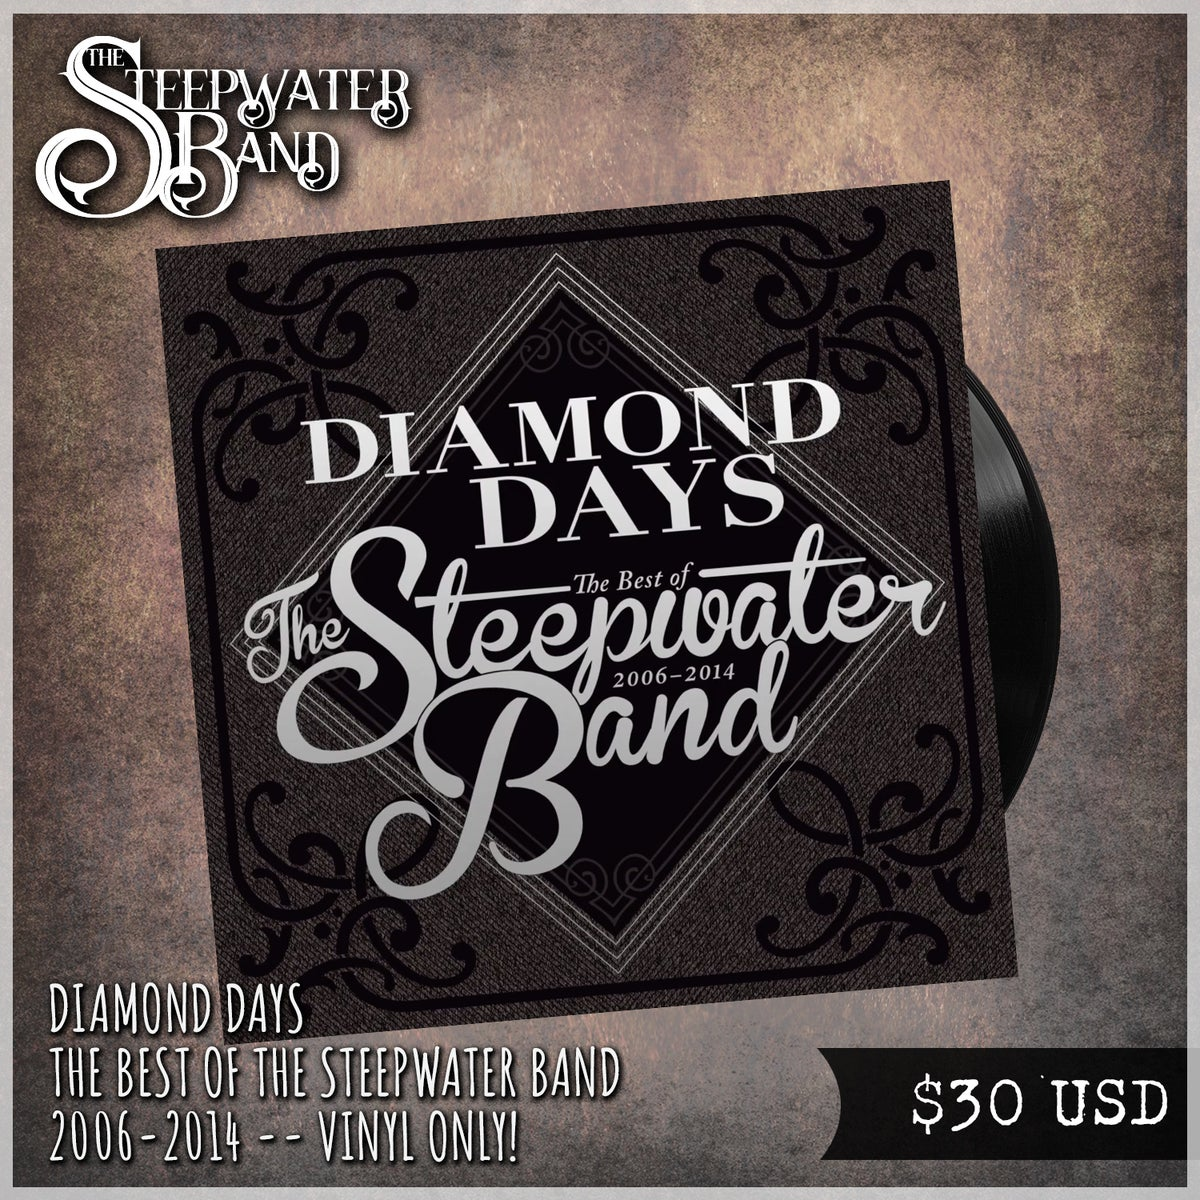 Diamond Days ~ The Best of The Steepwater Band 2006-2014 VINYL